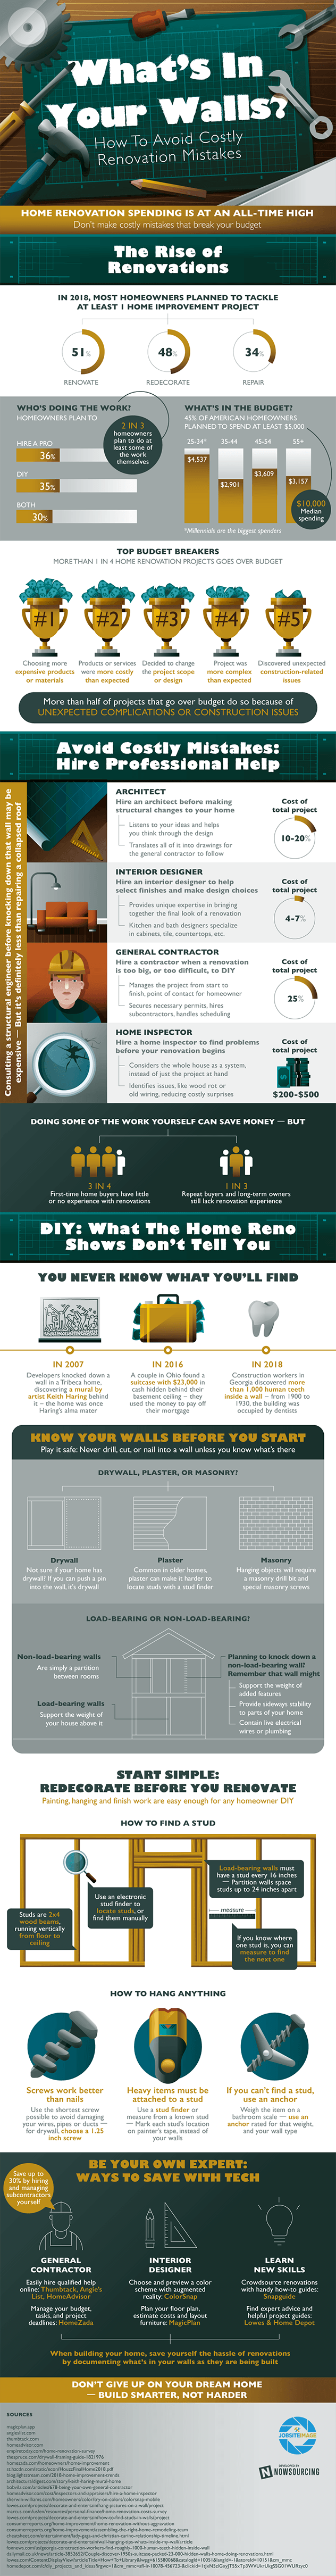 whats-in-your-walls-infographic